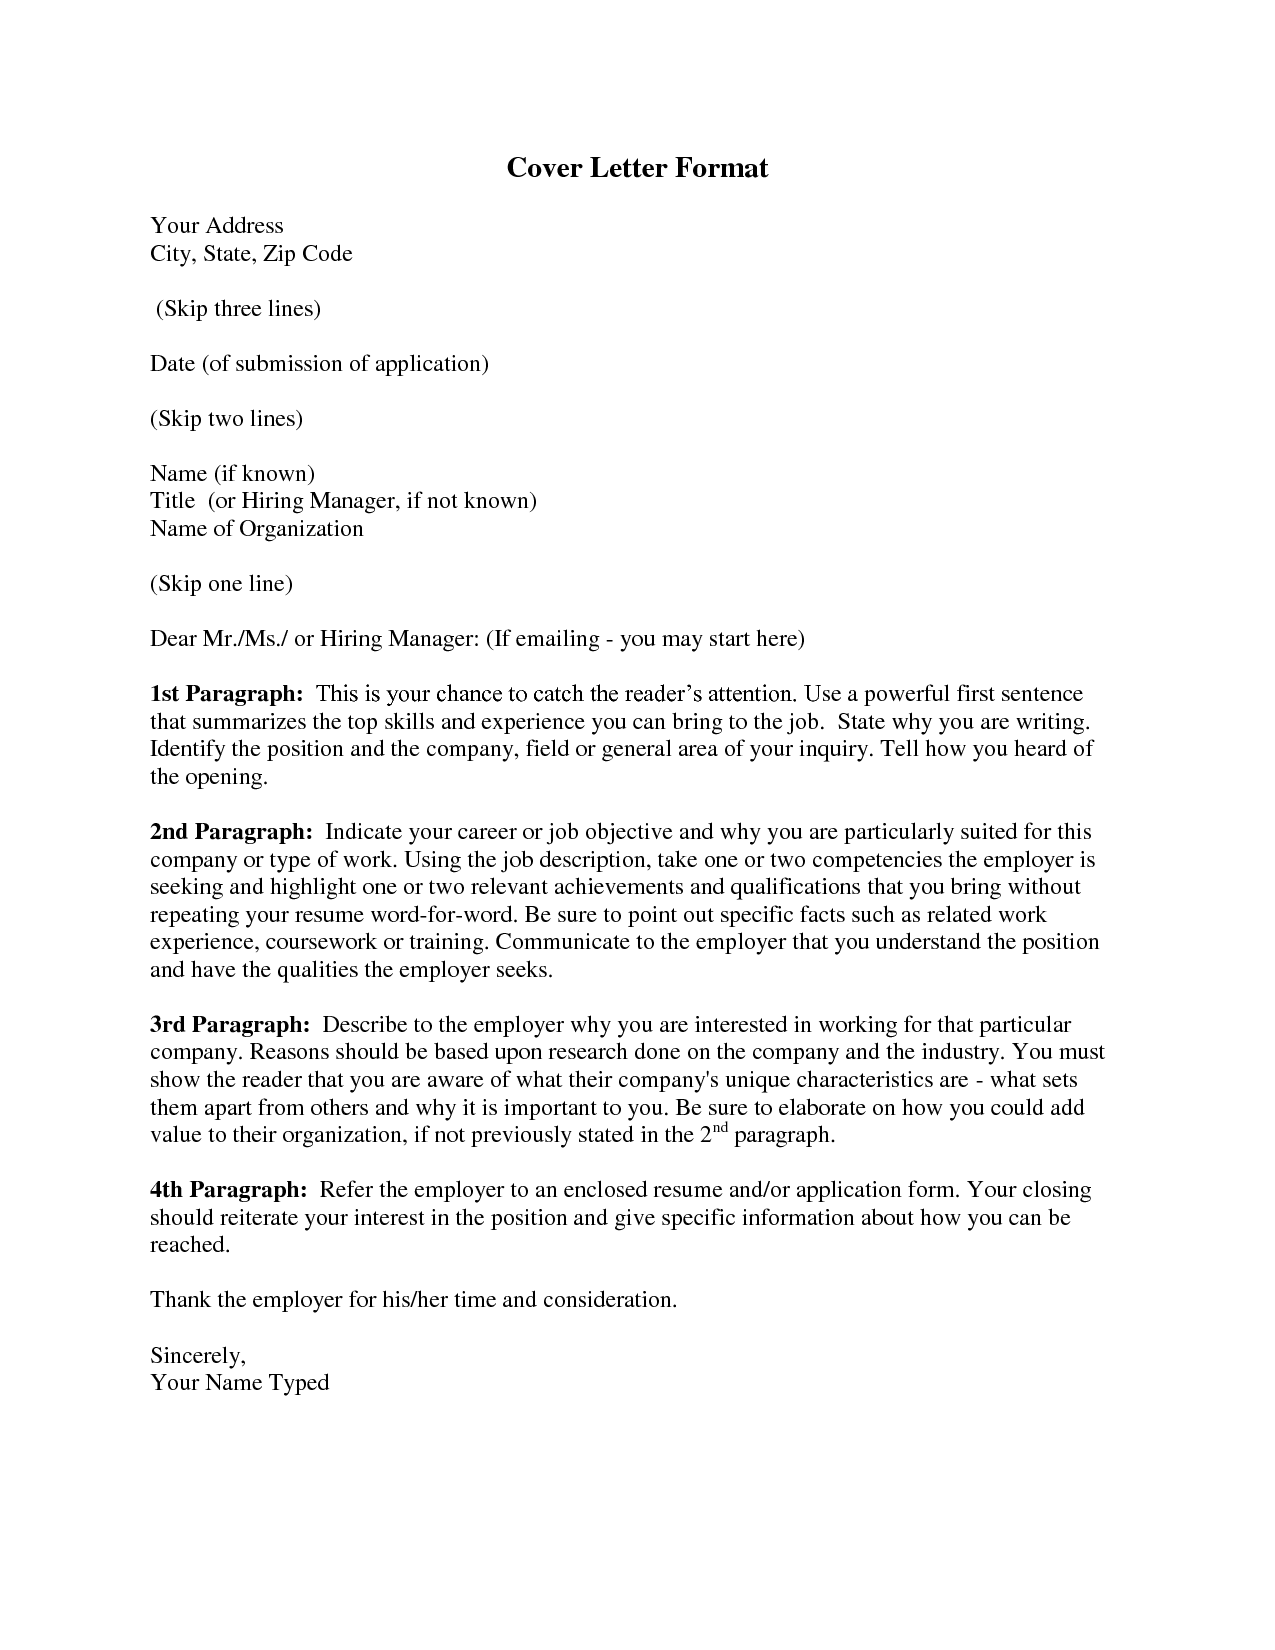 Cover letter format rich image and wallpaper for How to structure a covering letter